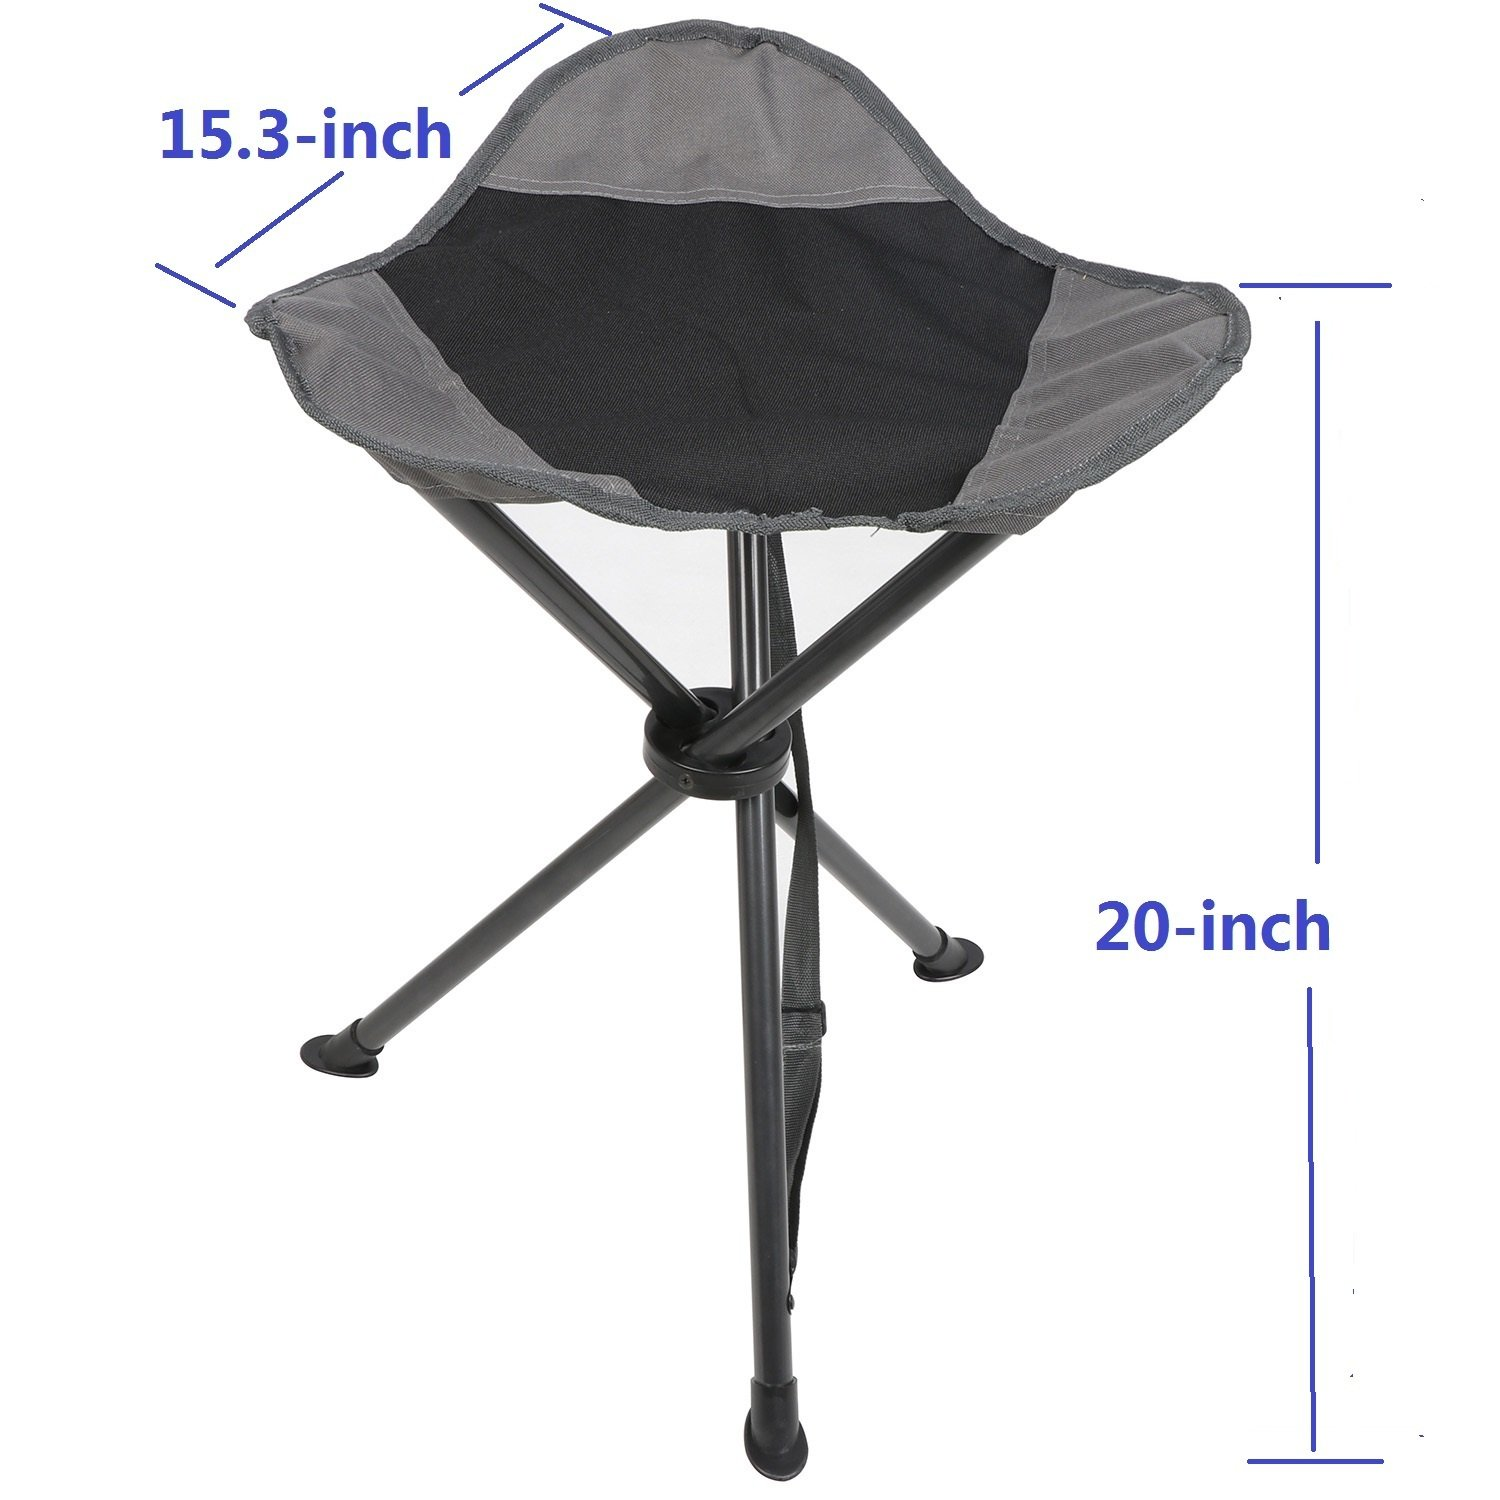 PORTAL Tall Slacker Chair Folding Tripod Stool for Outdoor Camping Walking Hunting Hiking Fishing Travel, Support 225 lbs by PORTAL